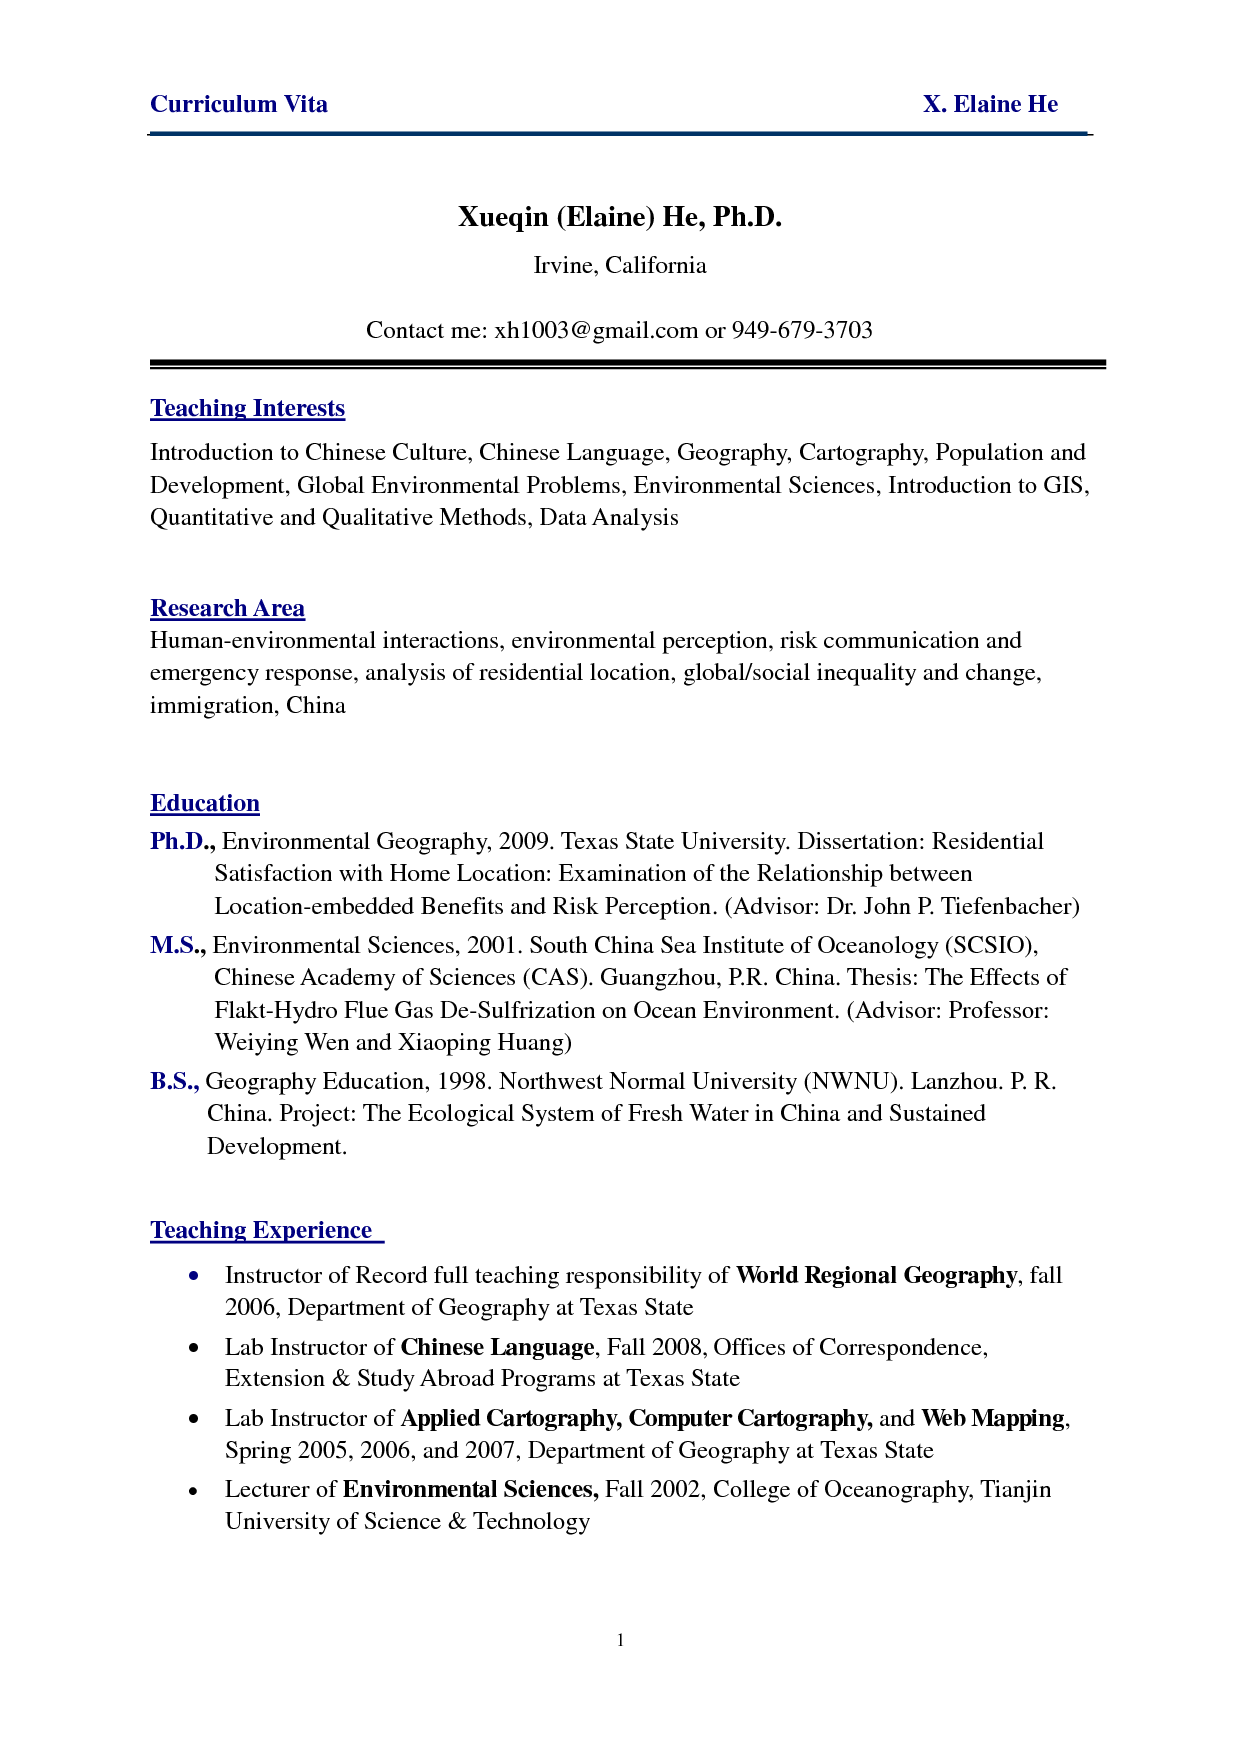 New Grad Lpn Resume Sample Lpn Resume Cover Letter For